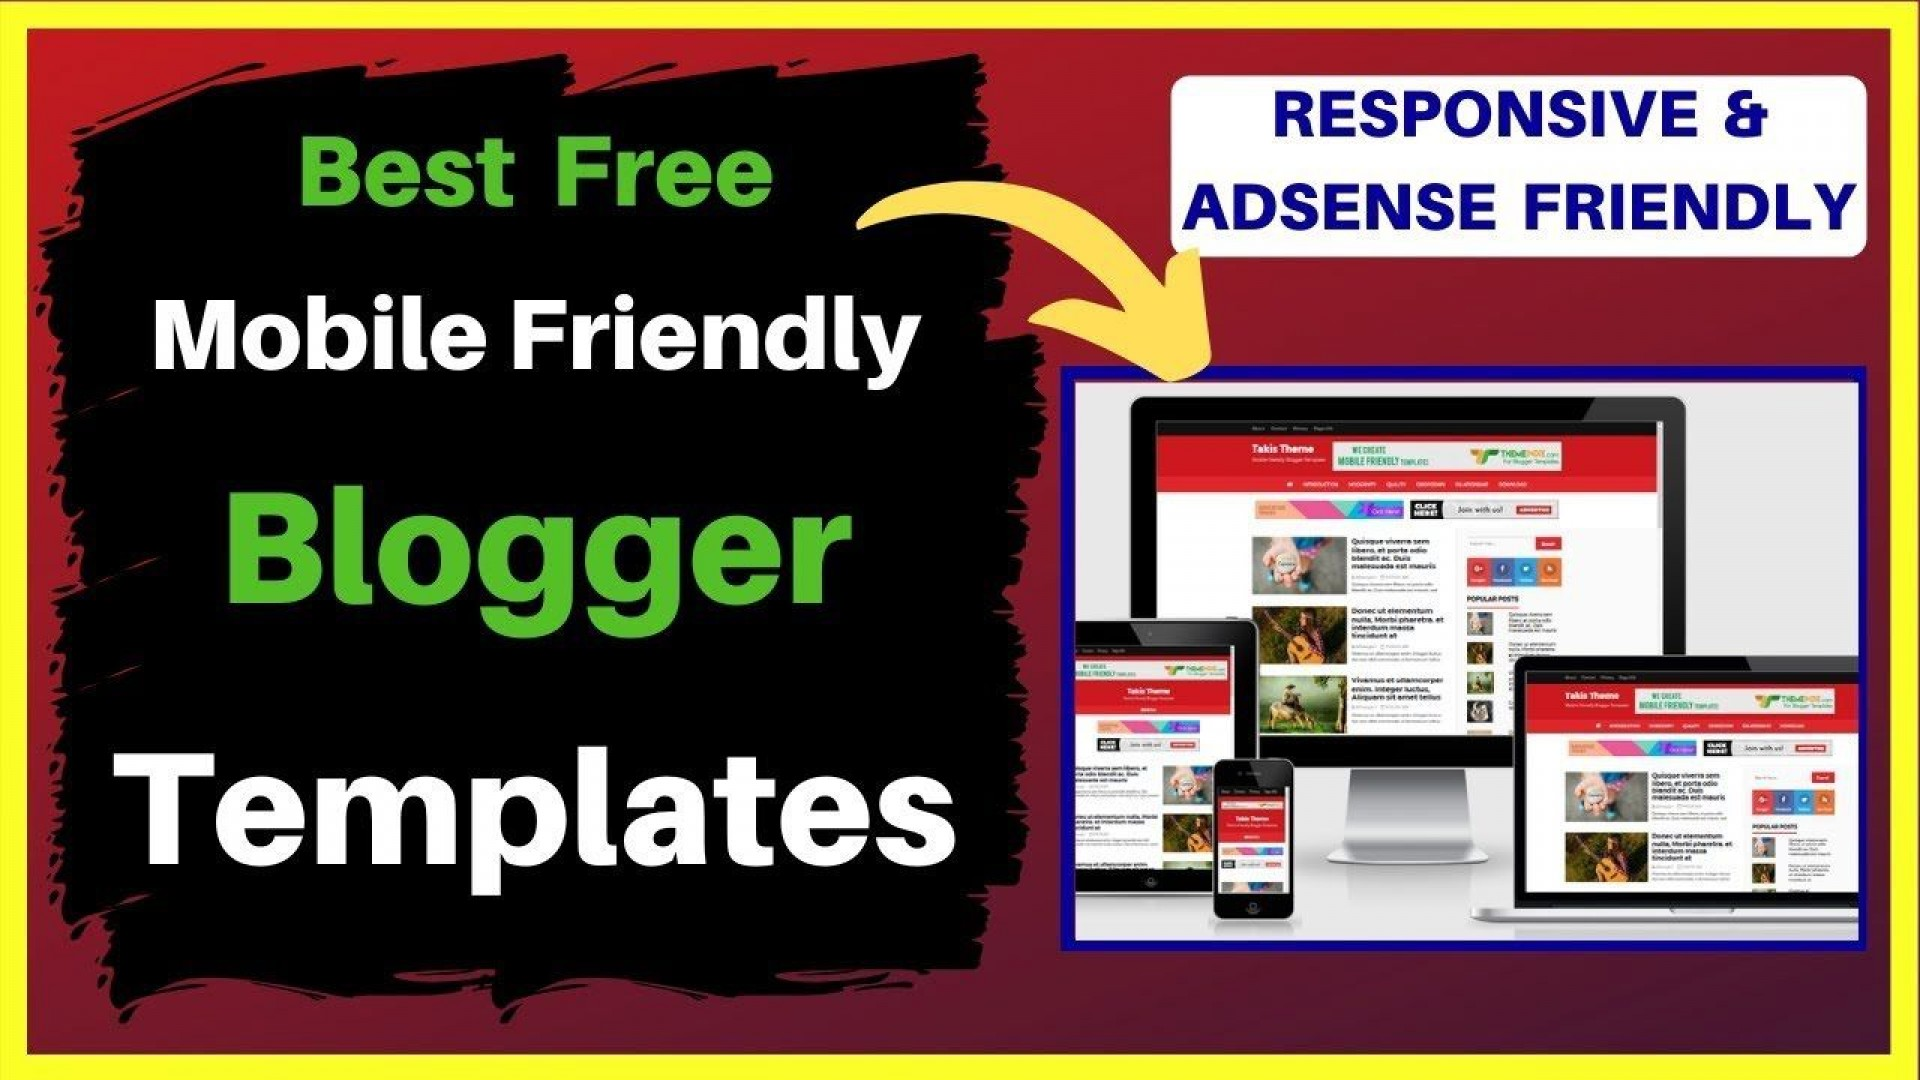 003 Unbelievable Free Responsive Seo Friendly Blogger Template High Def 1920